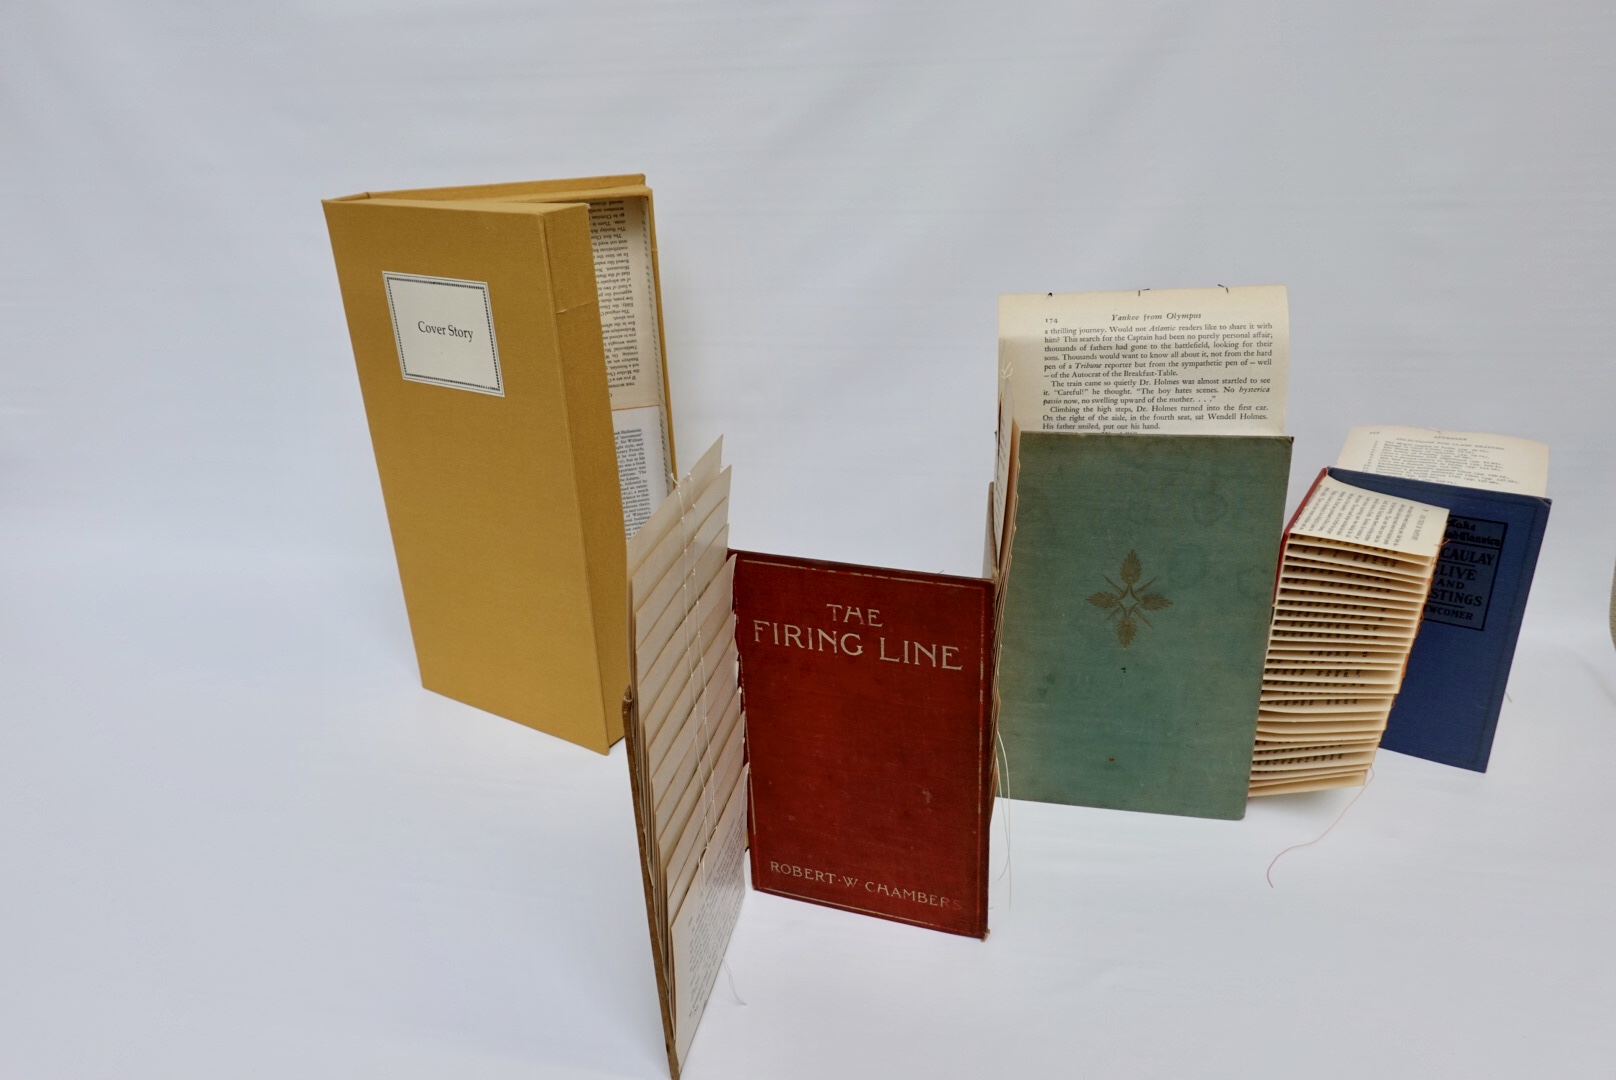 Book art Cover Story with interior pages spread out